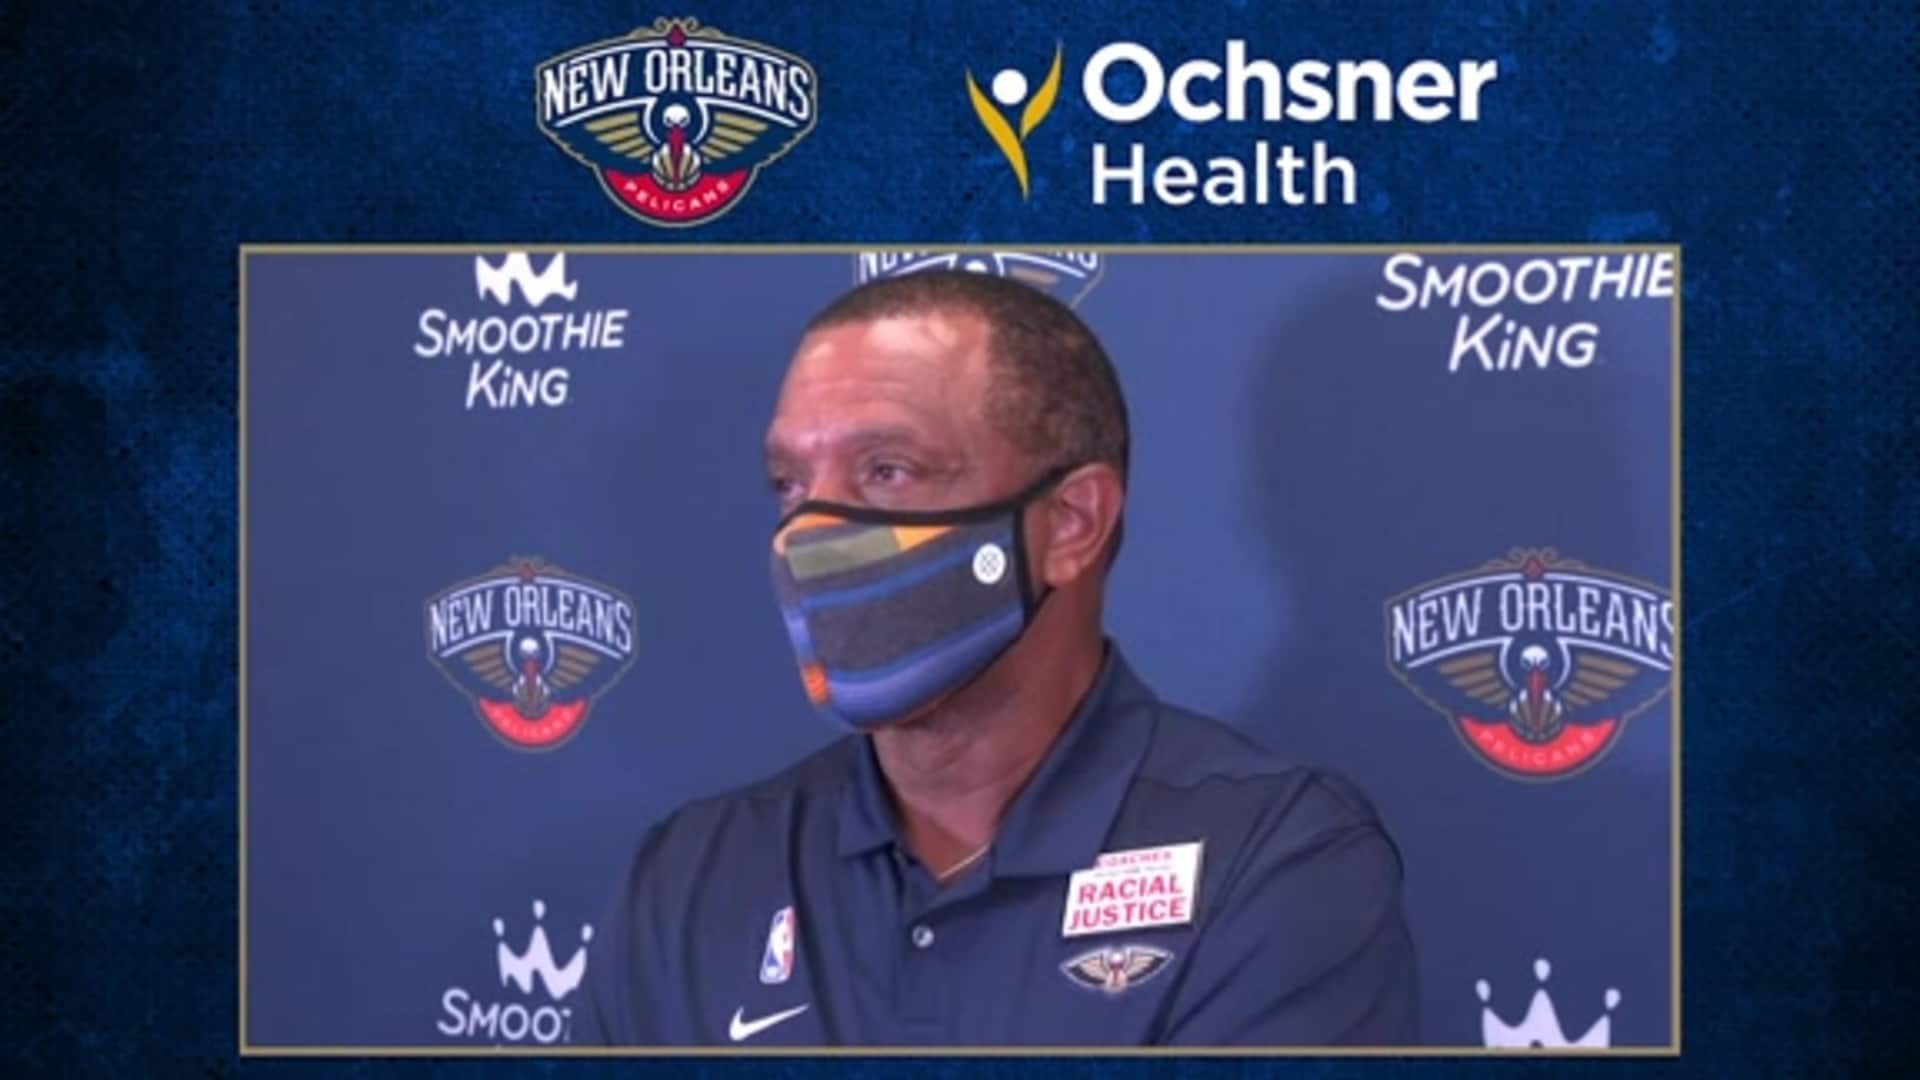 Pelicans Postgame Interview: Alvin Gentry talks first half execution, correcting mistakes and moving forward